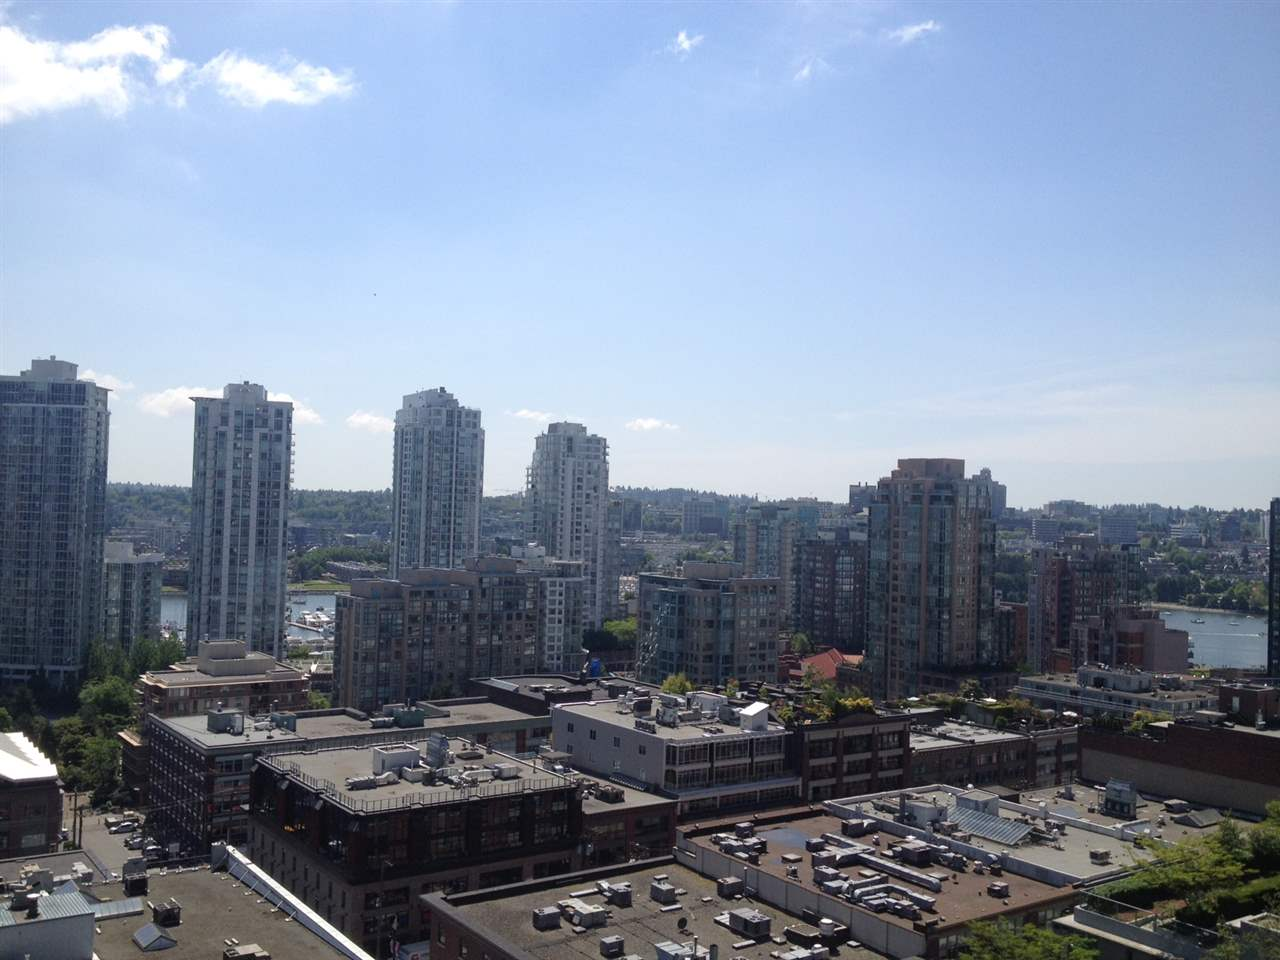 Photo 8: 1808 1088 RICHARDS Street in Vancouver: Yaletown Condo for sale (Vancouver West)  : MLS® # R2071276